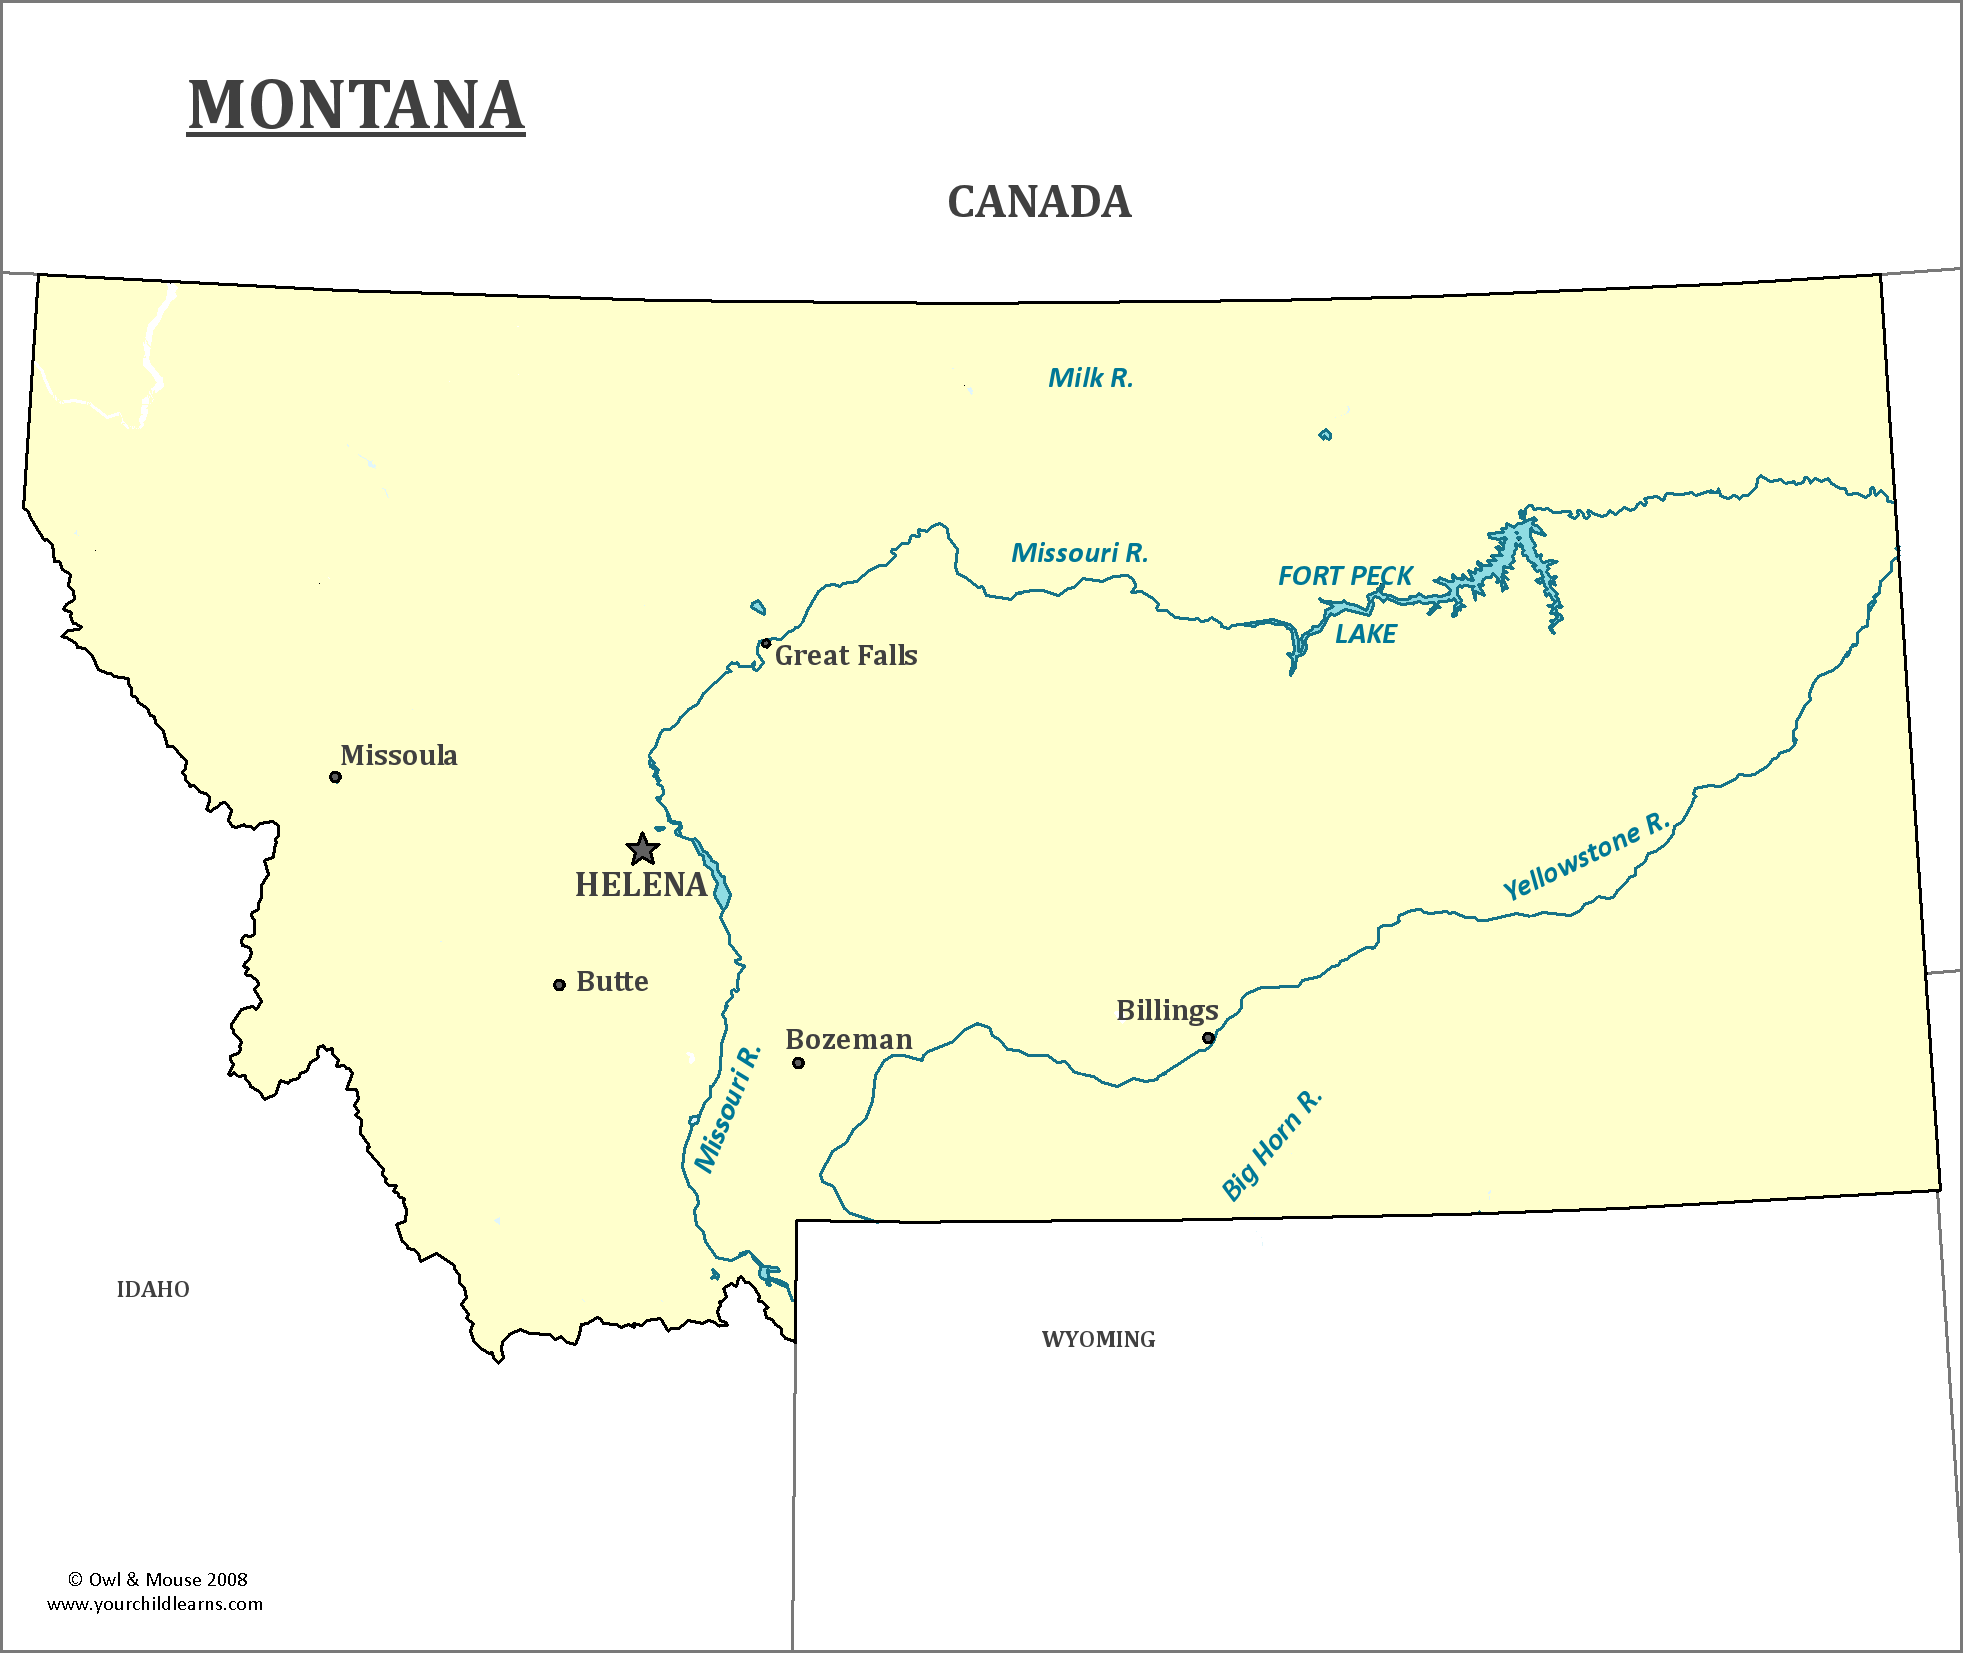 Montana State Map - Map of Montana and Information About the State